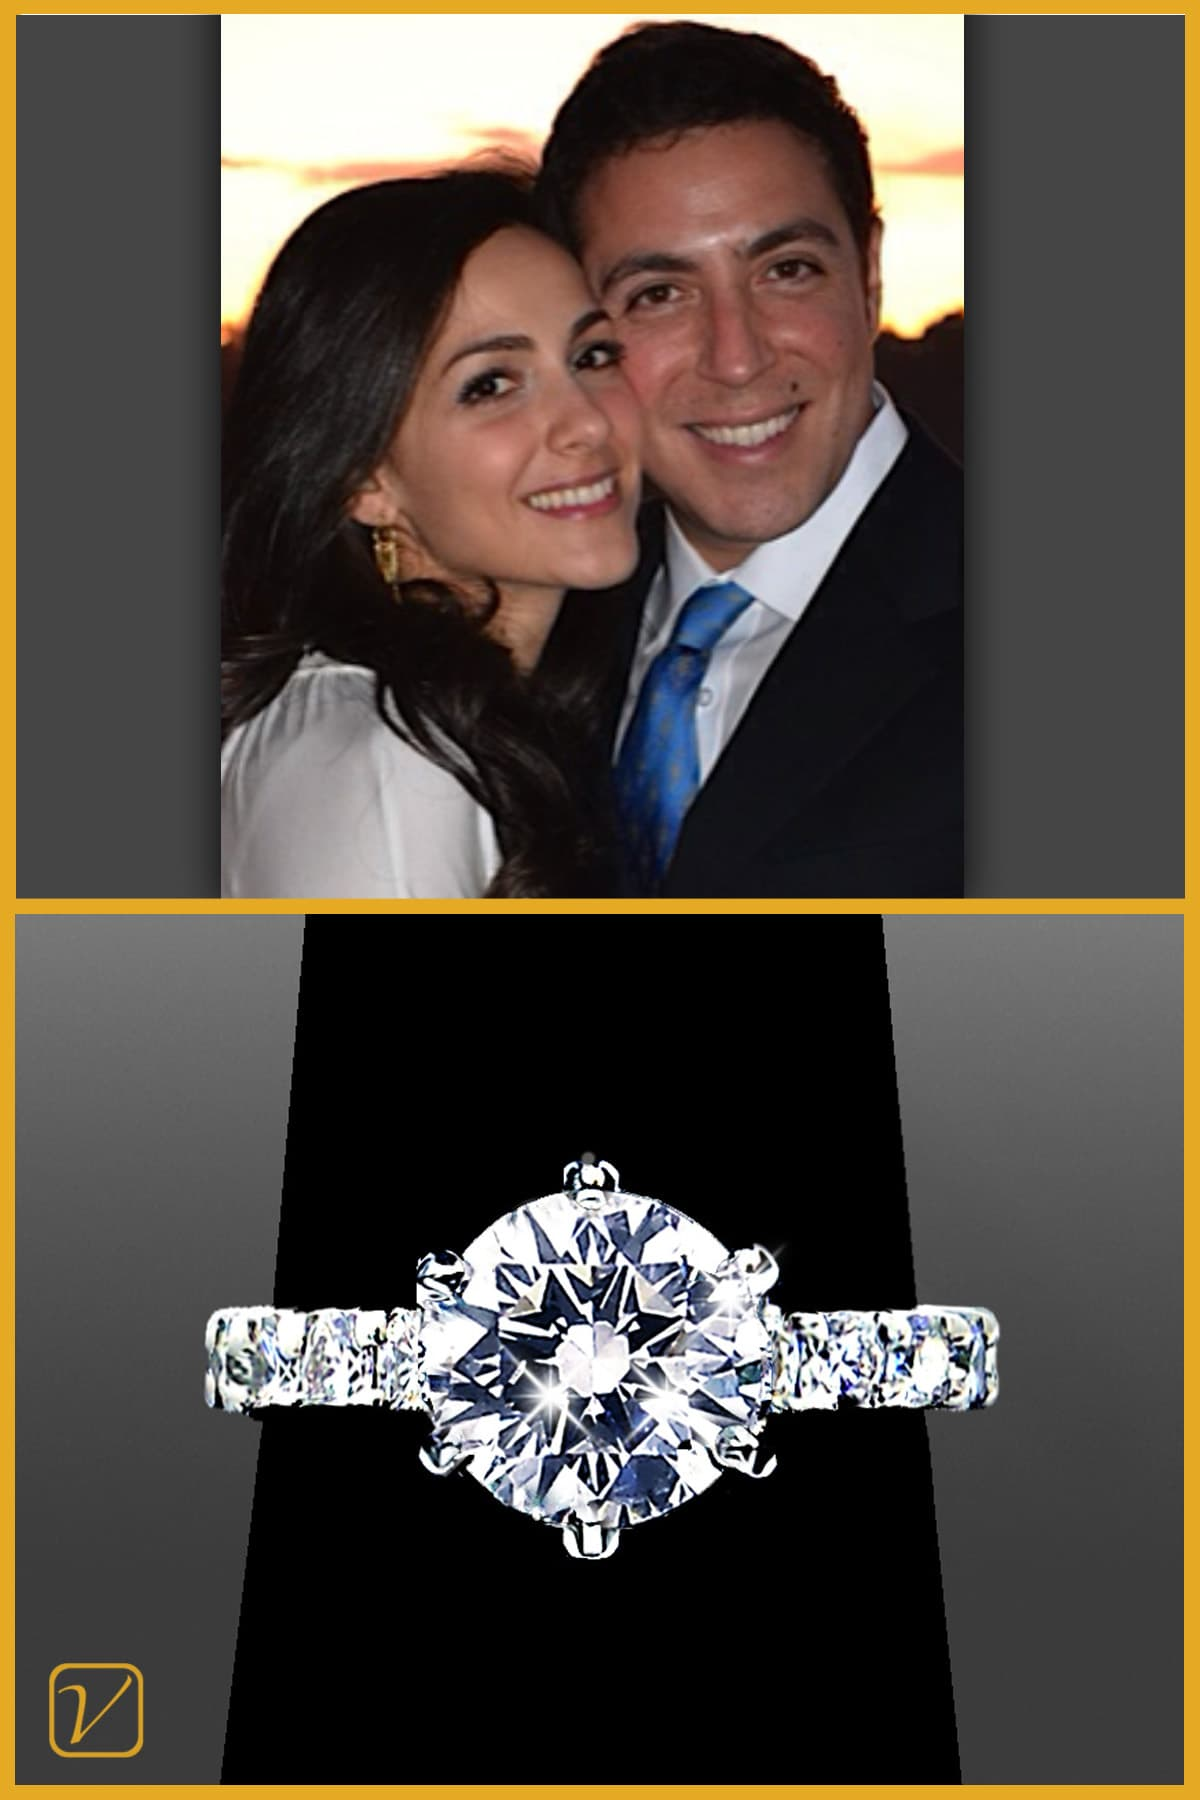 Danny & Carla - Solitaire Engagement Ring - Vanessa Nicole Jewels - Testimonials